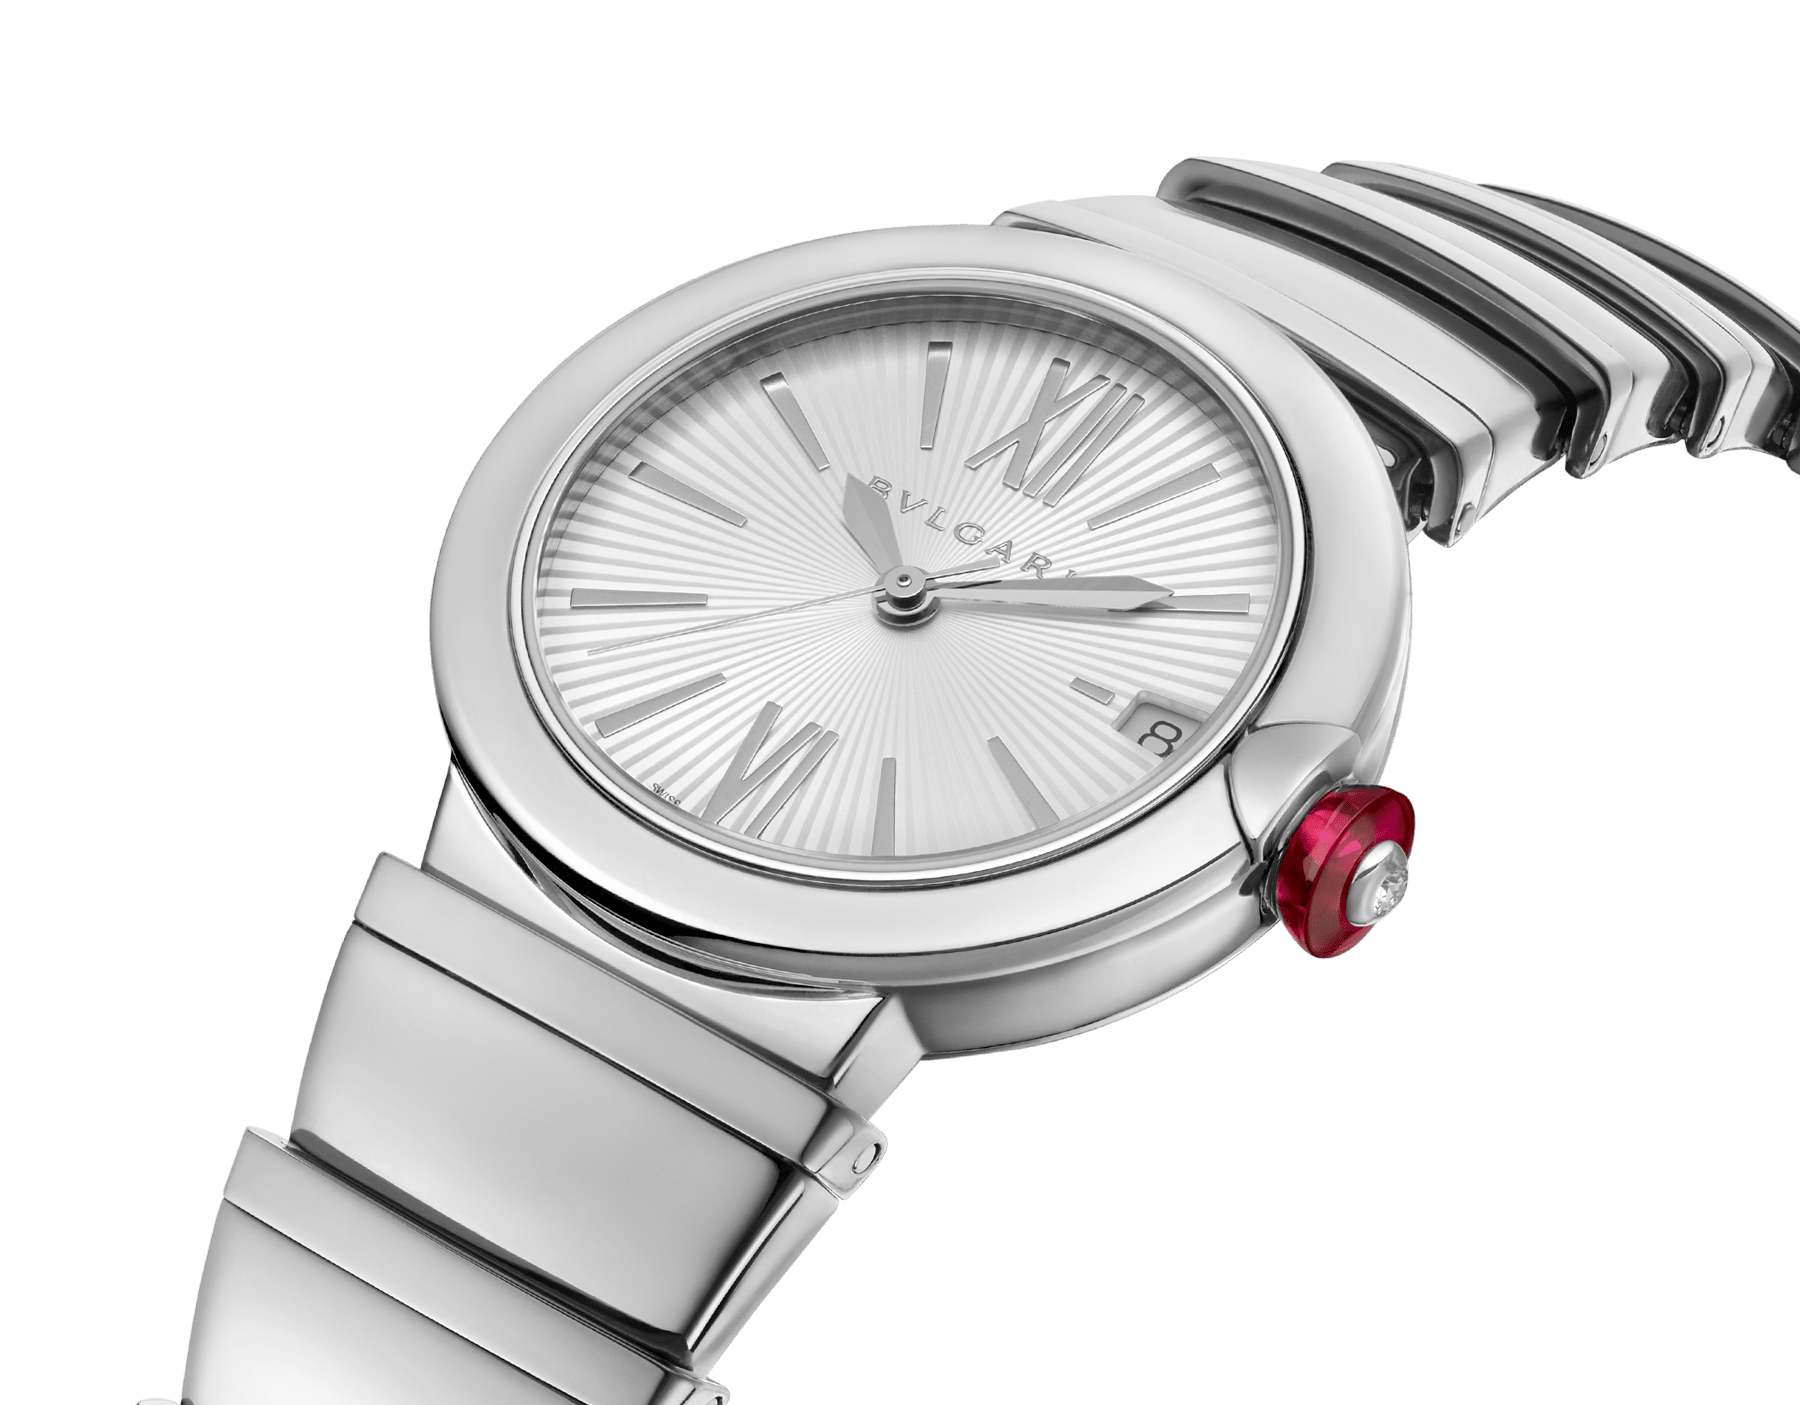 LVCEA watch in stainless steel case and bracelet, with silver opaline dial. 102219 image 2